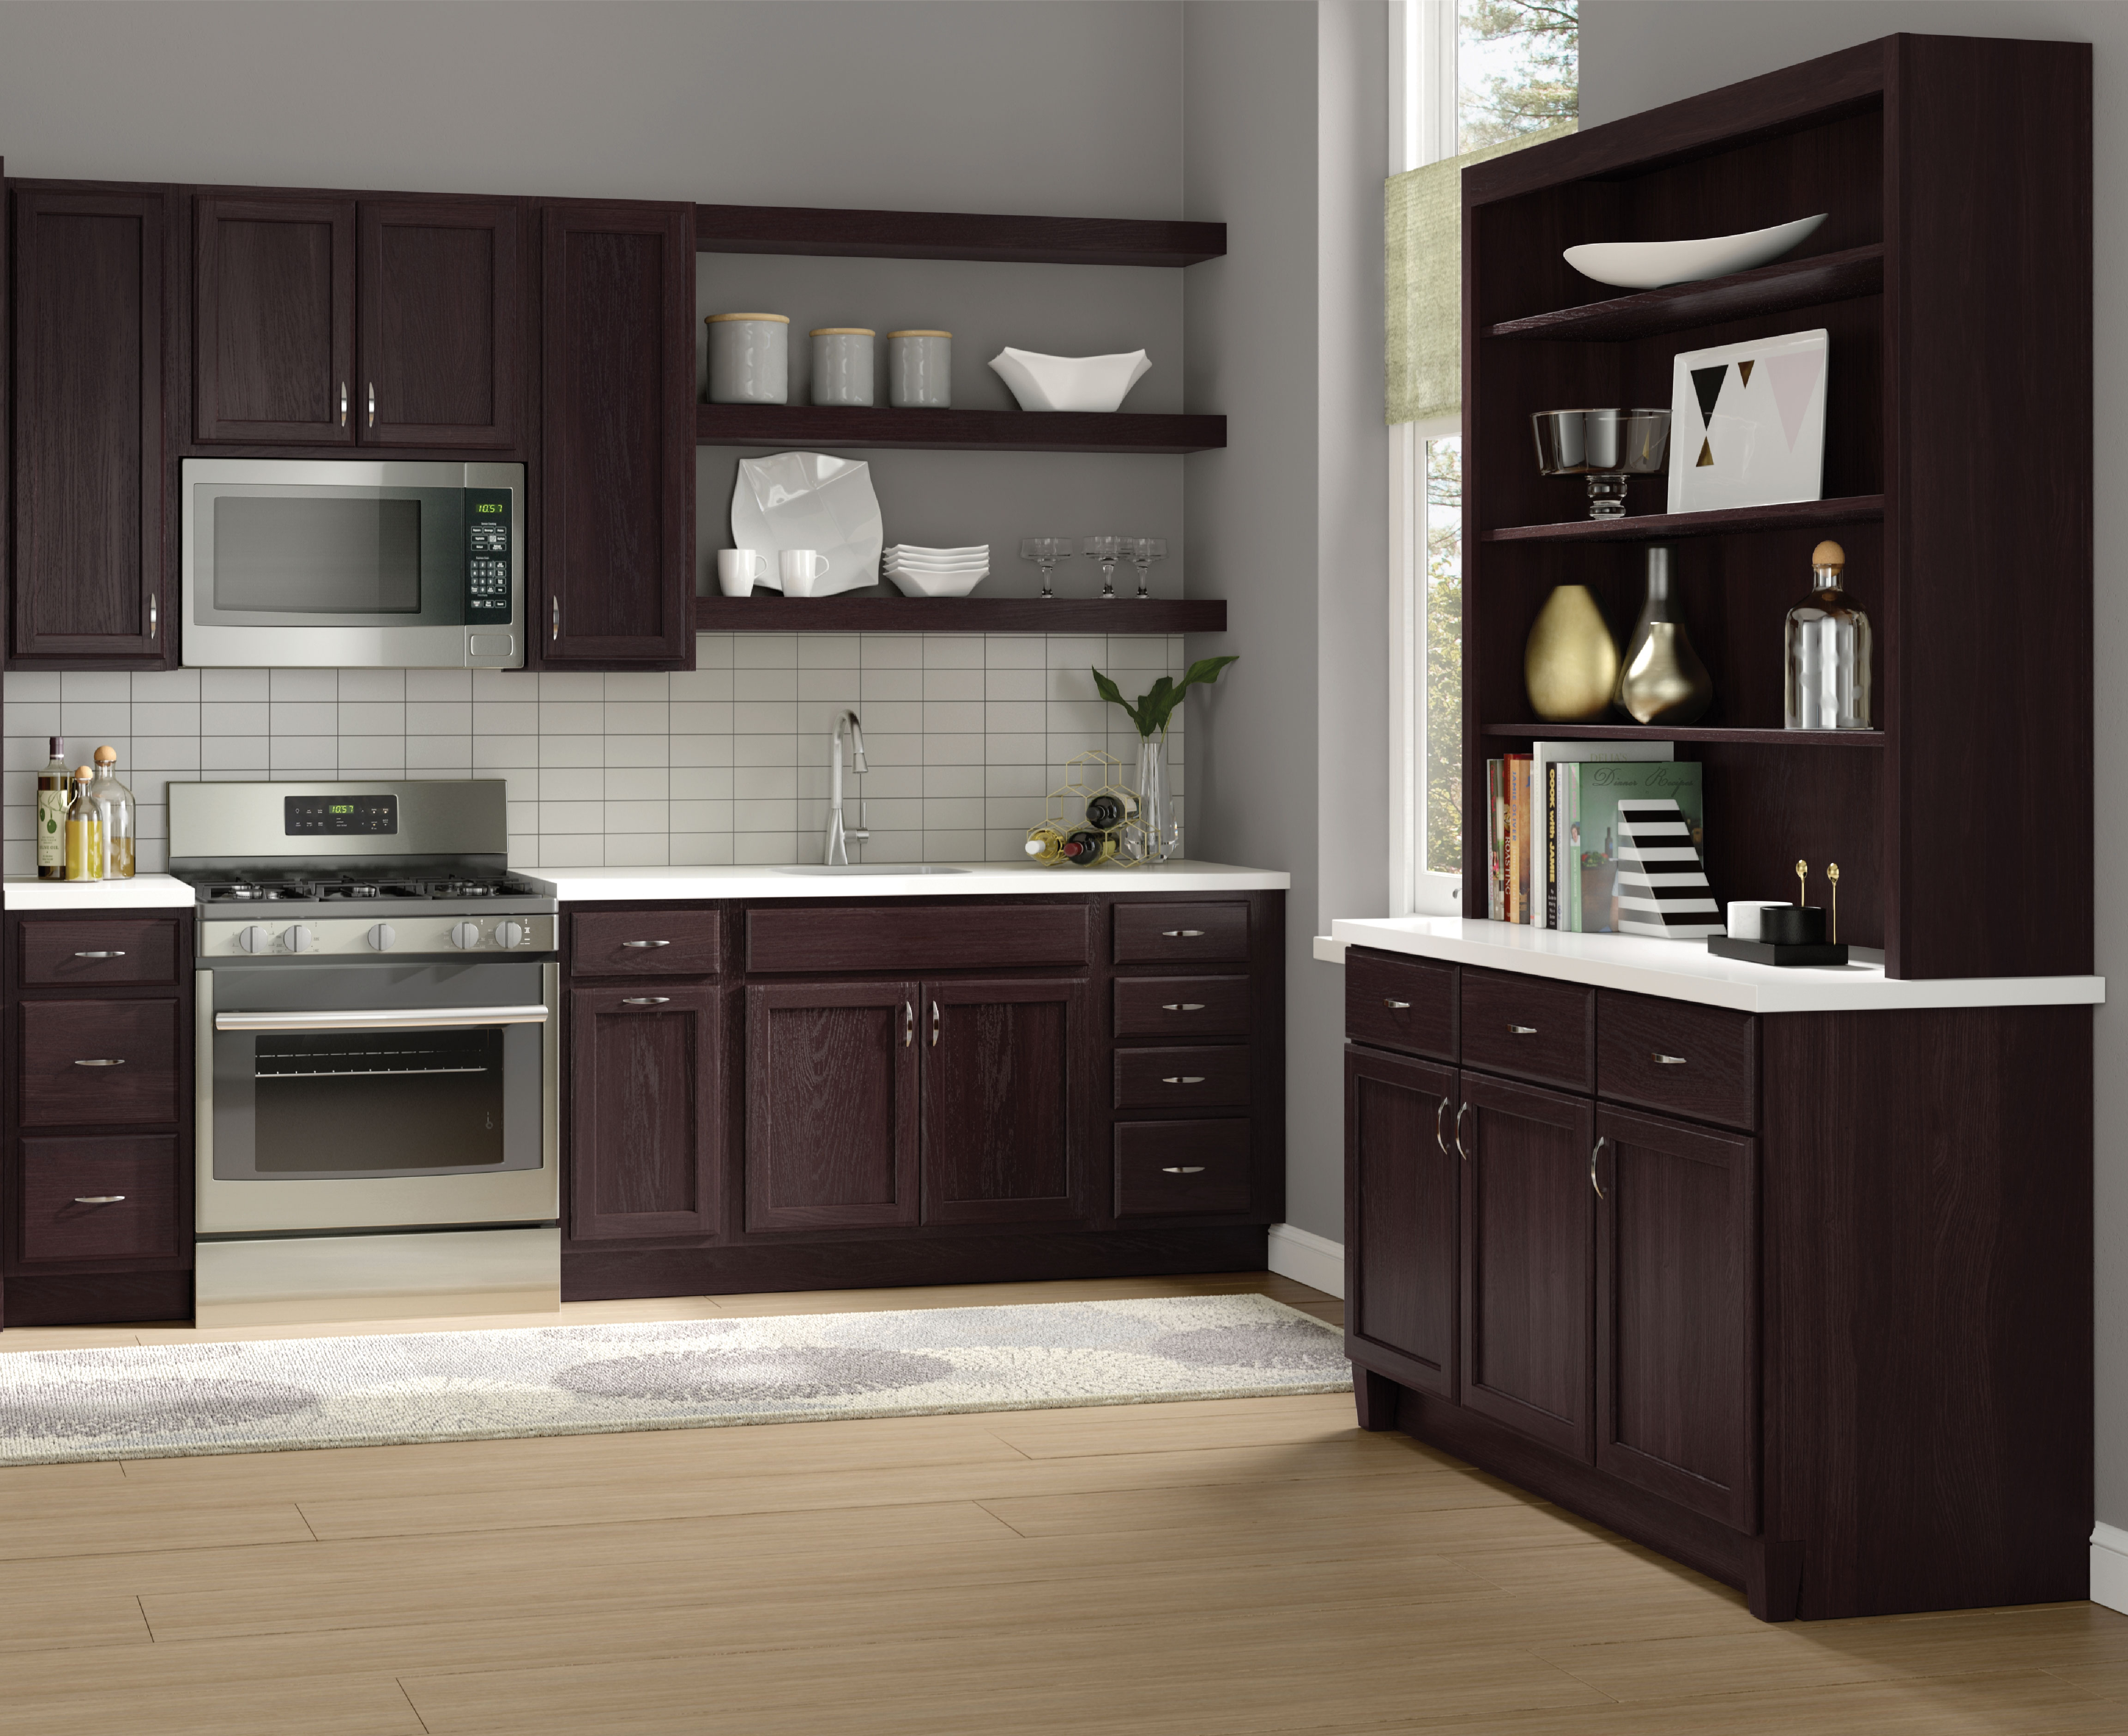 Quality Cabinets in Janesville & Madison, WI